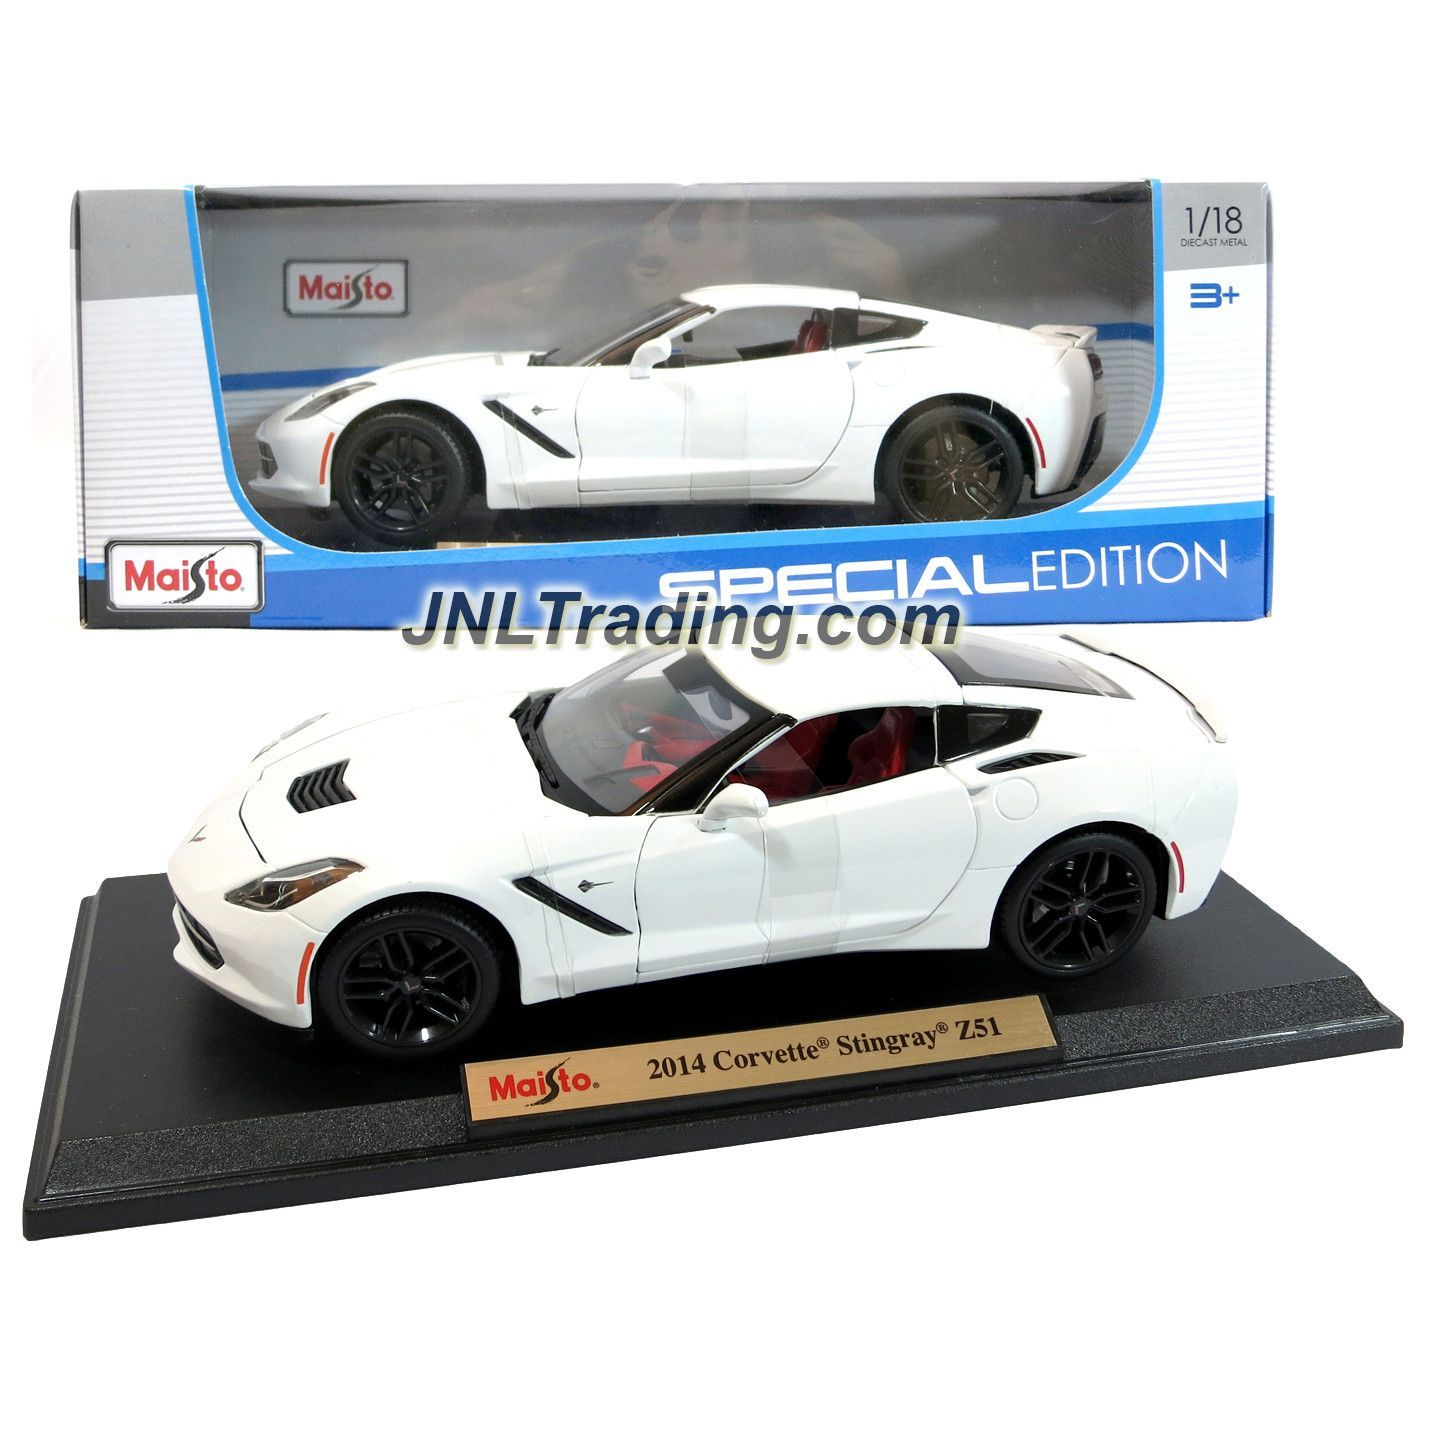 Maisto special edition series 1 18 scale die cast car set white sports coupe